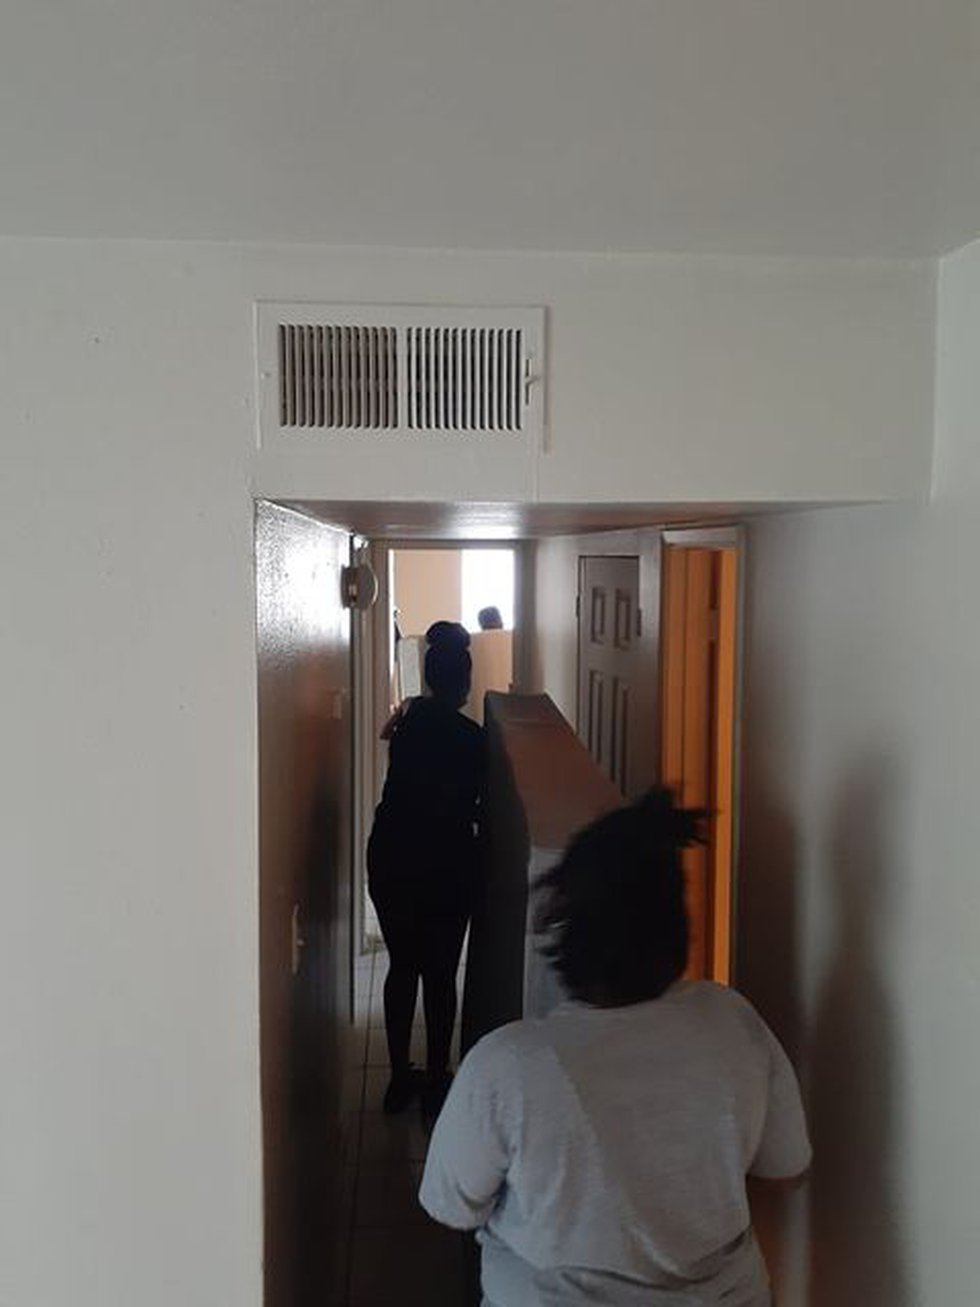 Darby moves in to new apartment